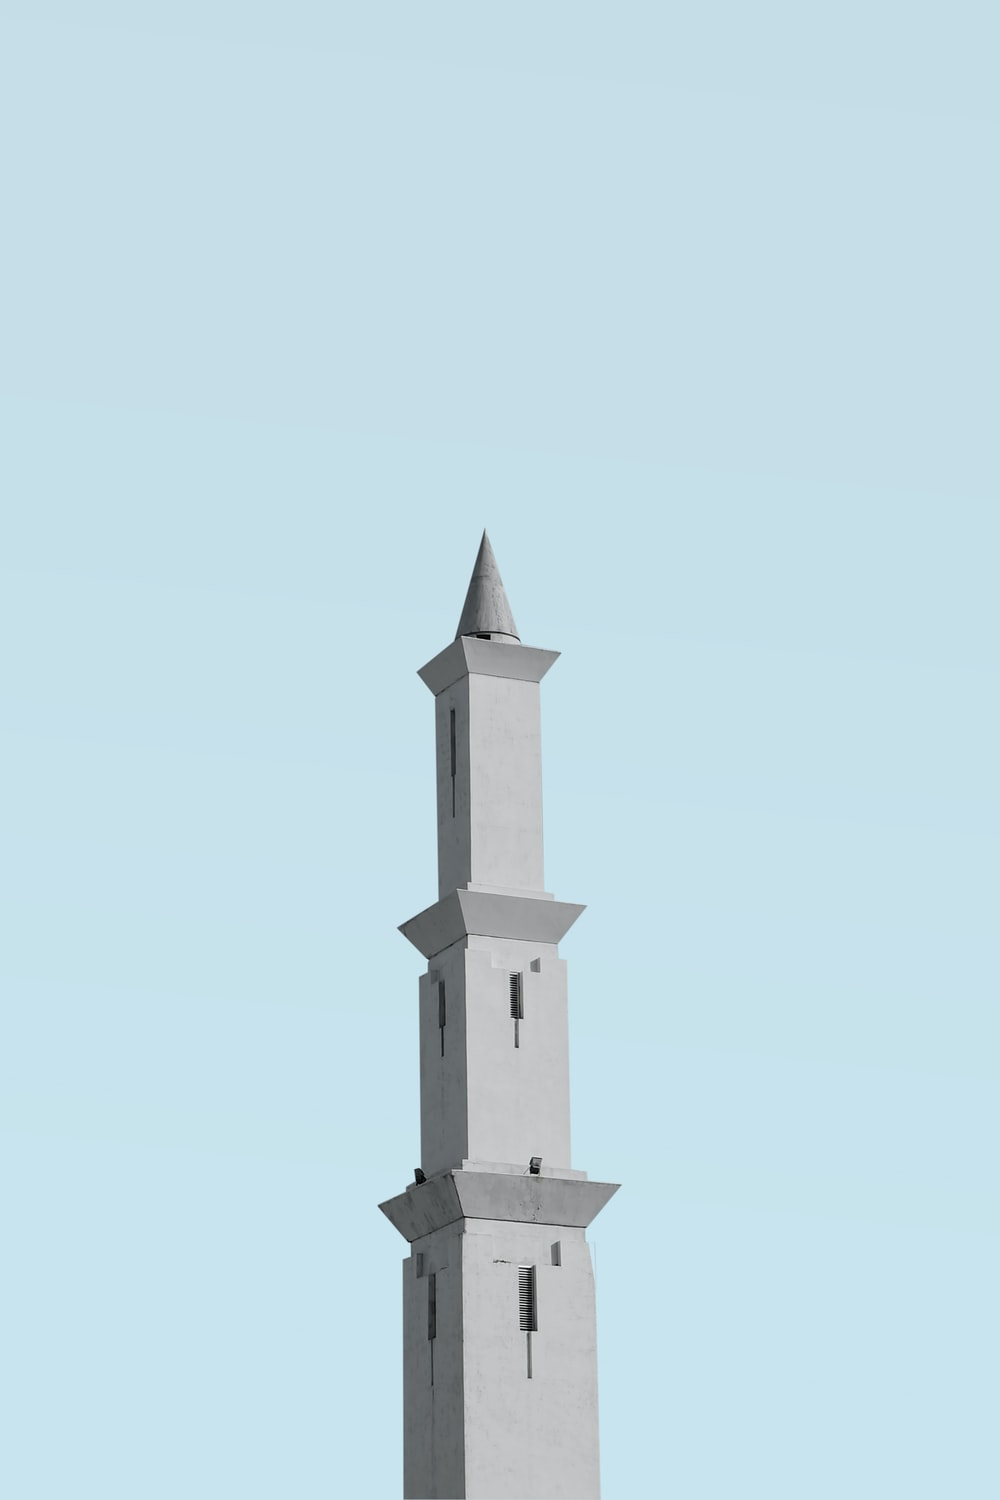 gray concrete tower